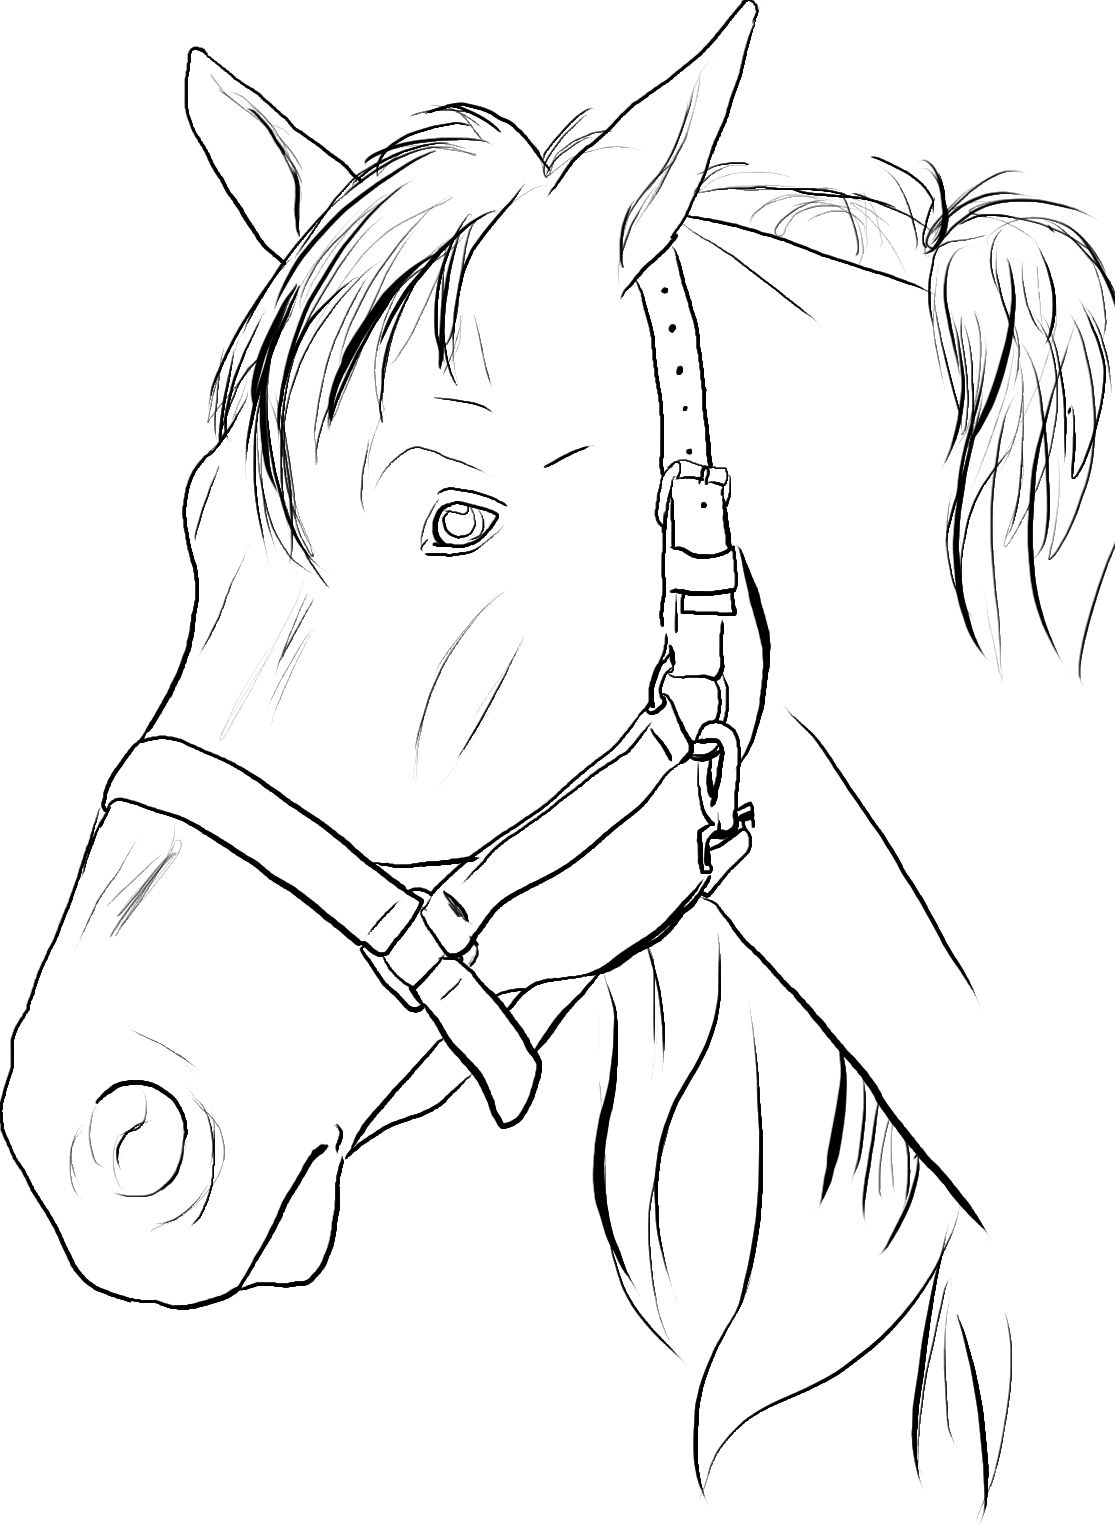 20 Horses Ideas Horse Coloring Pages